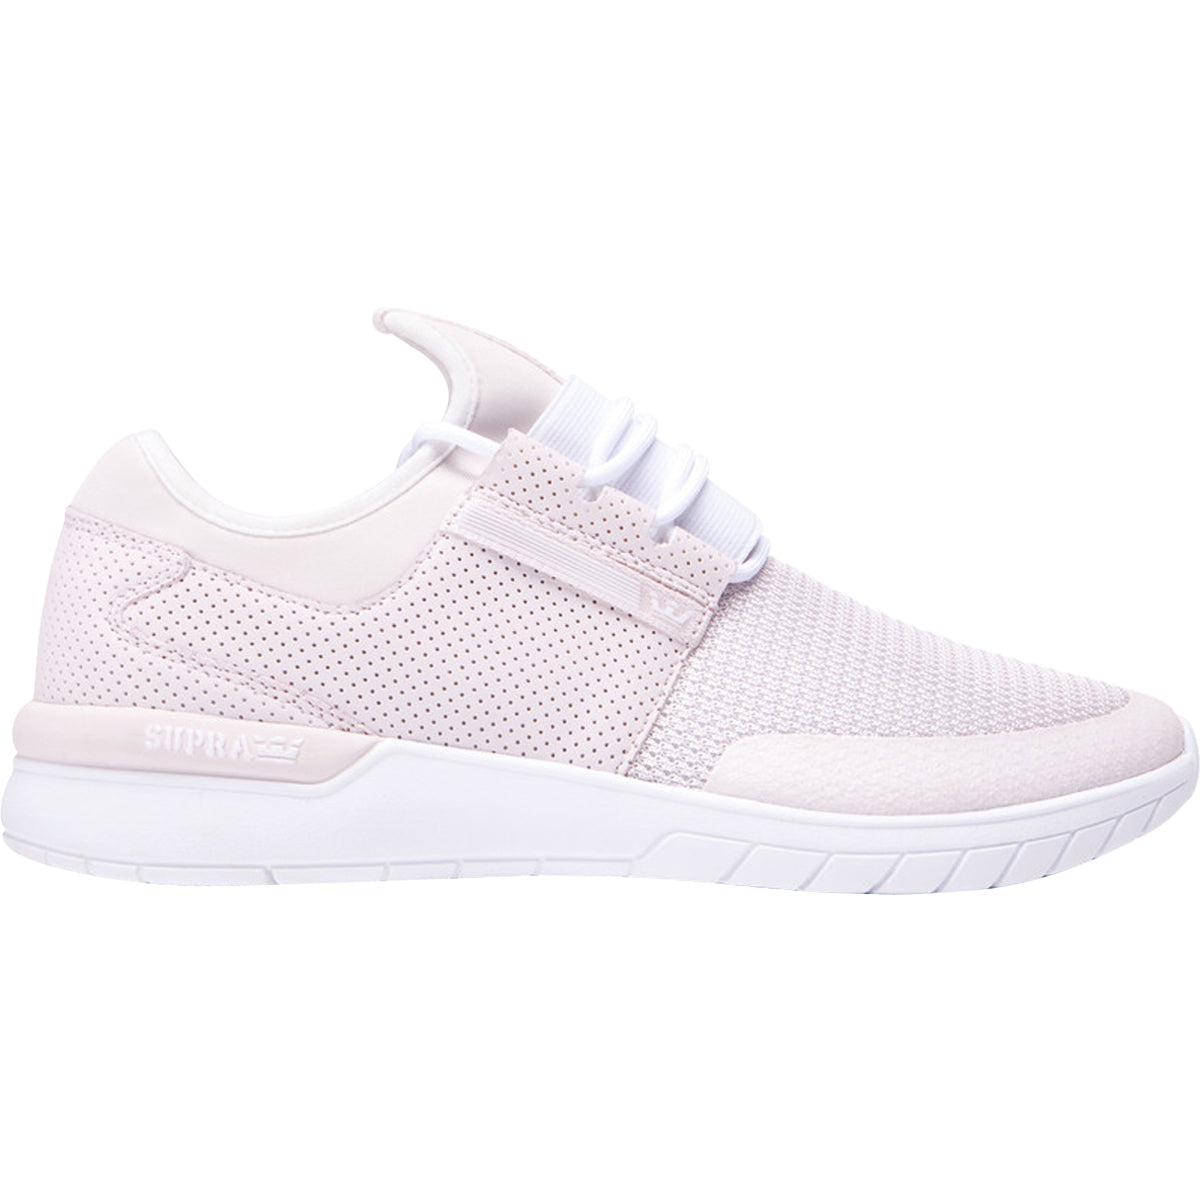 Supra Flow Run Men's Shoes Footwear-08021